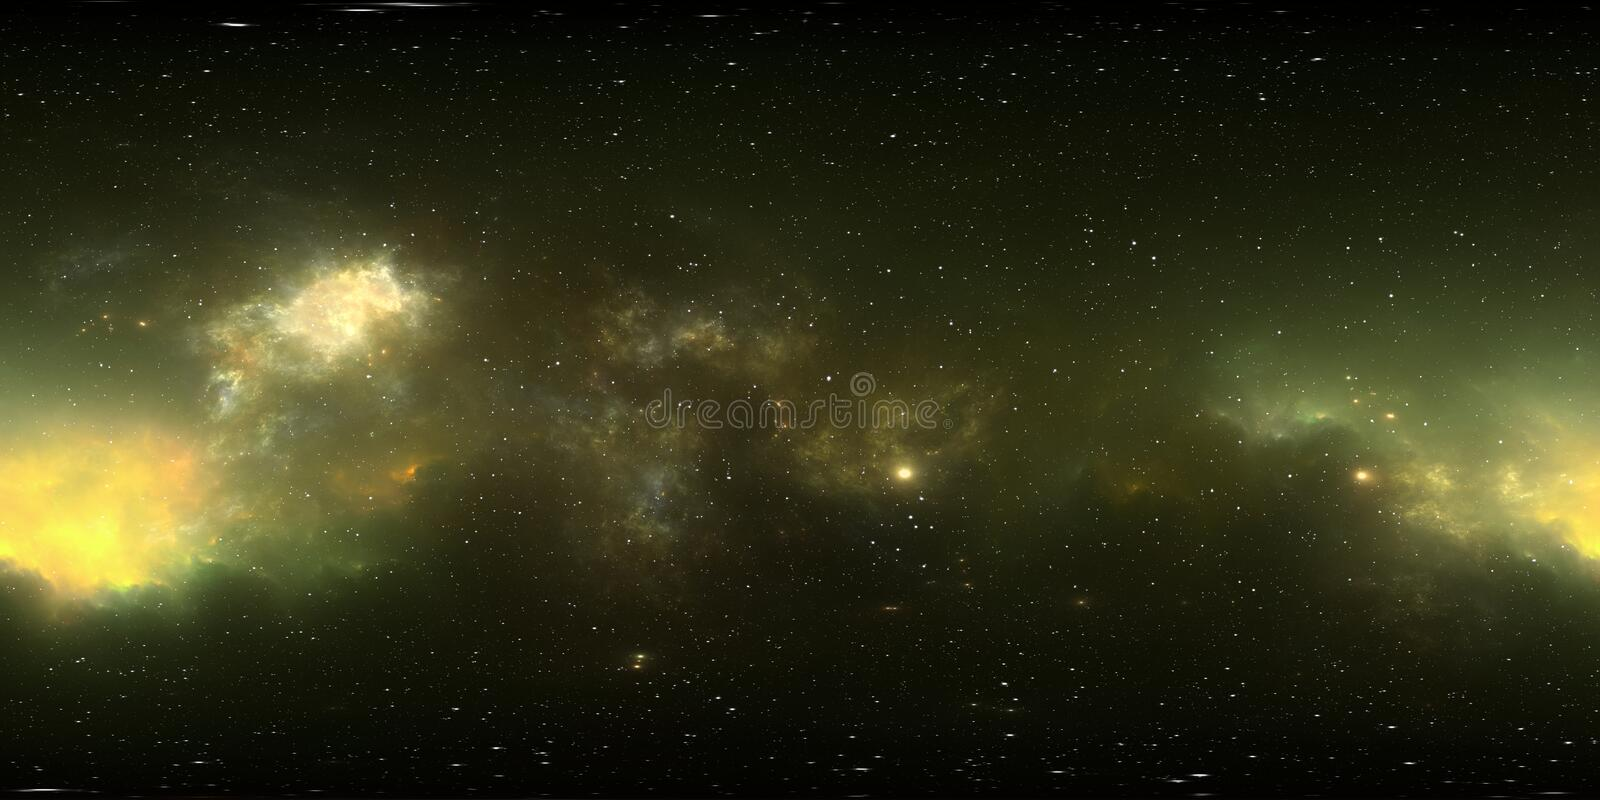 360 degree stellar system and gas nebula. Panorama, environment 360 HDRI map. Equirectangular projection, spherical panorama. 3d illustration vector illustration